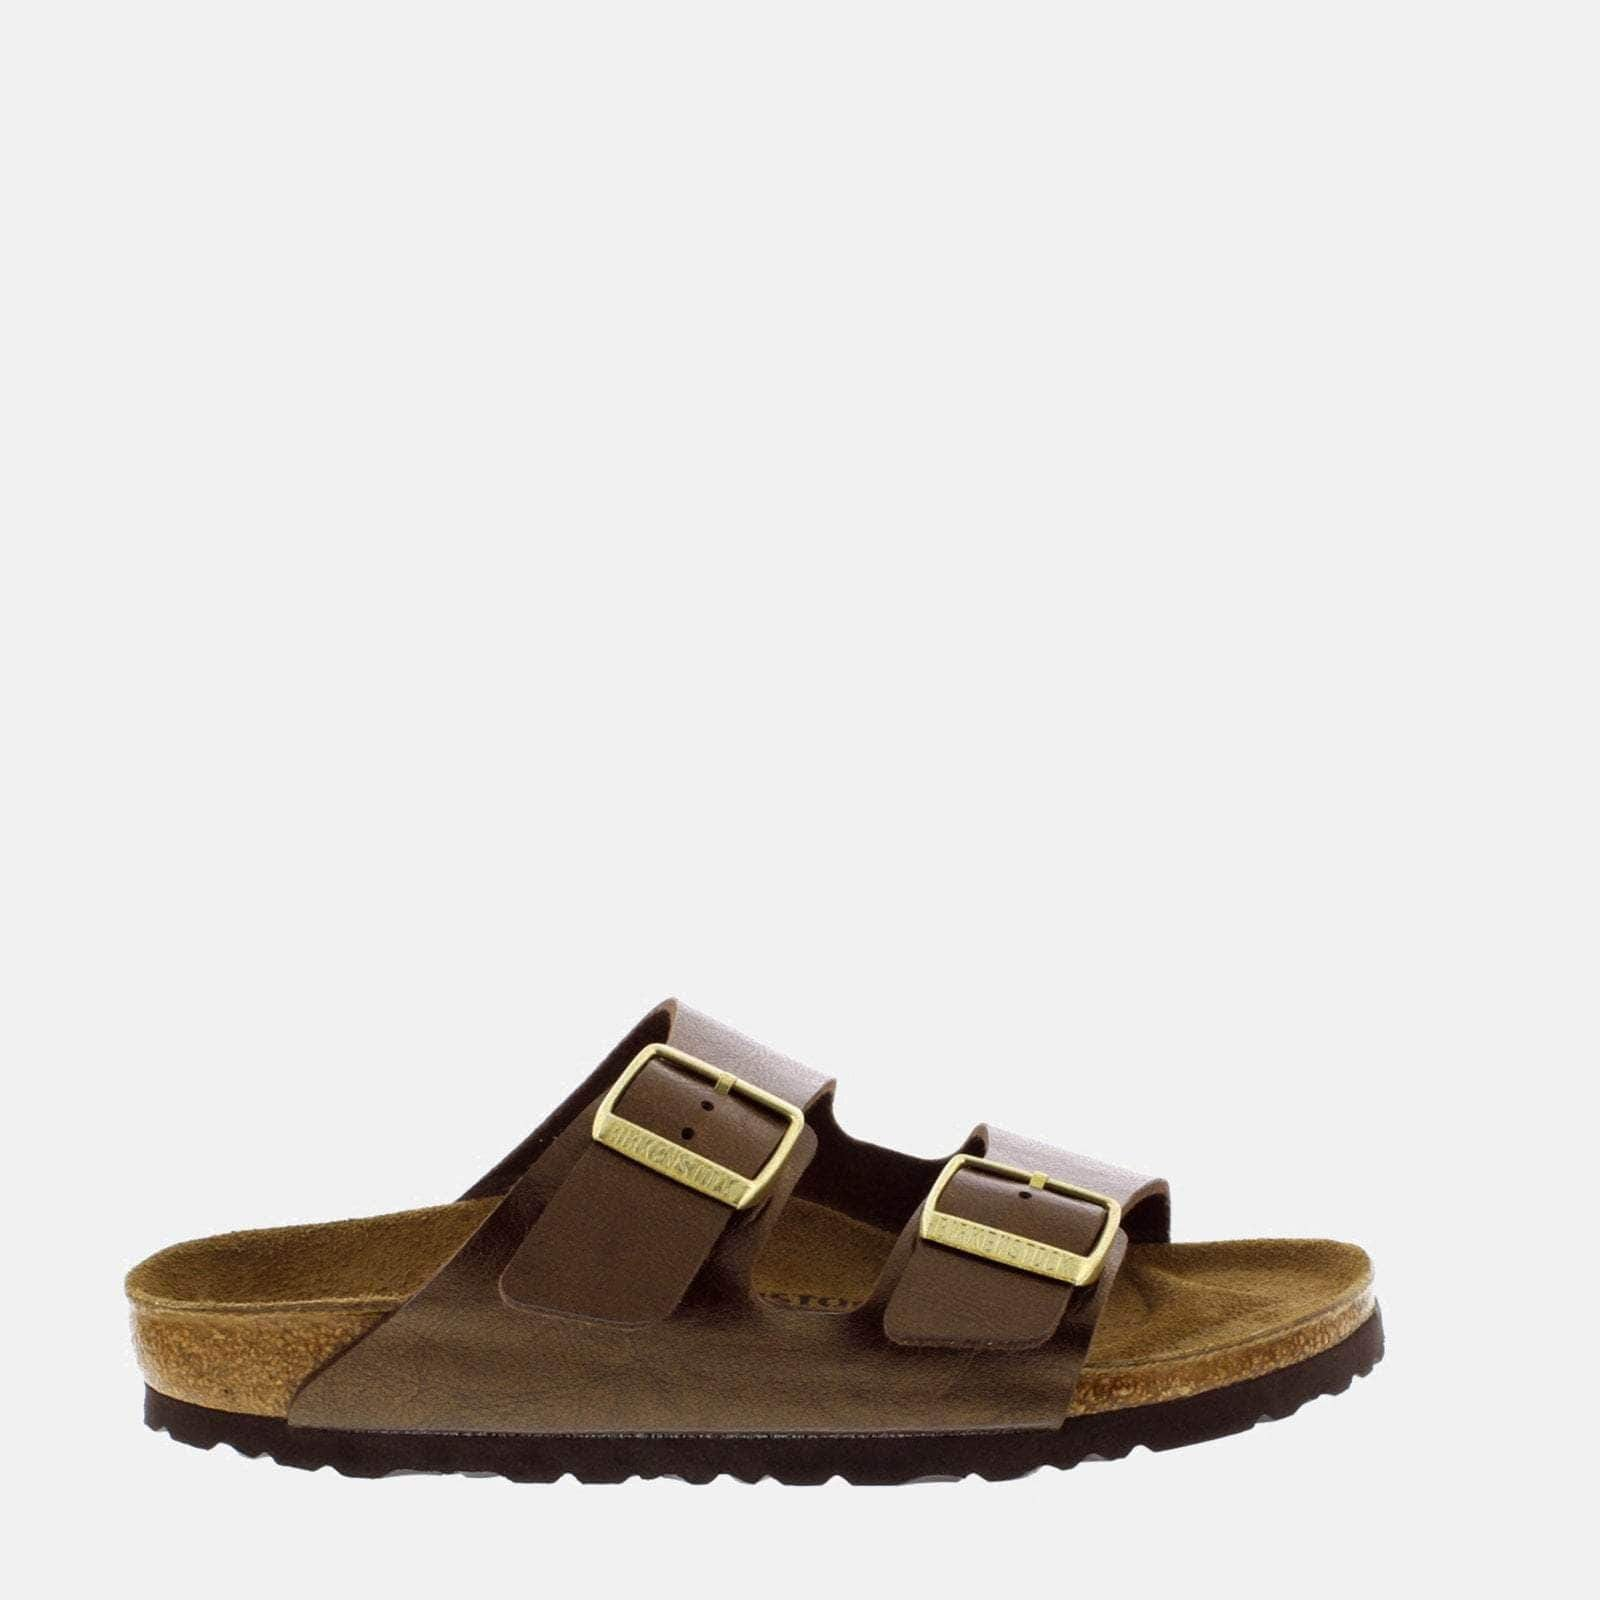 Birkenstock Footwear Arizona Narrow Fit Graceful Toffee 1009919